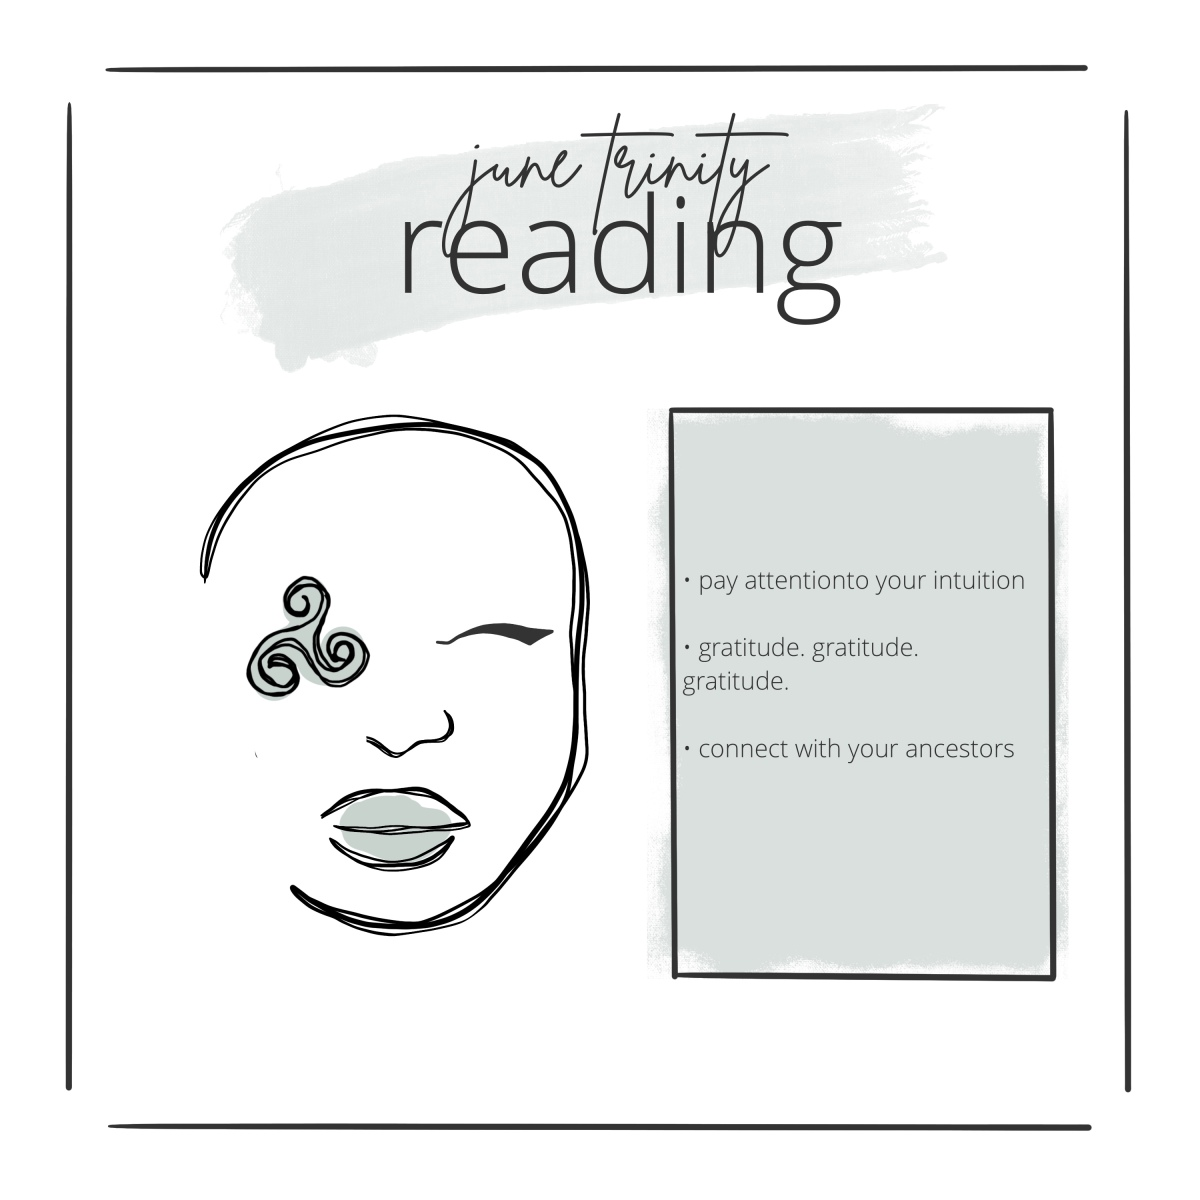 june trinity reading overview by shan bae